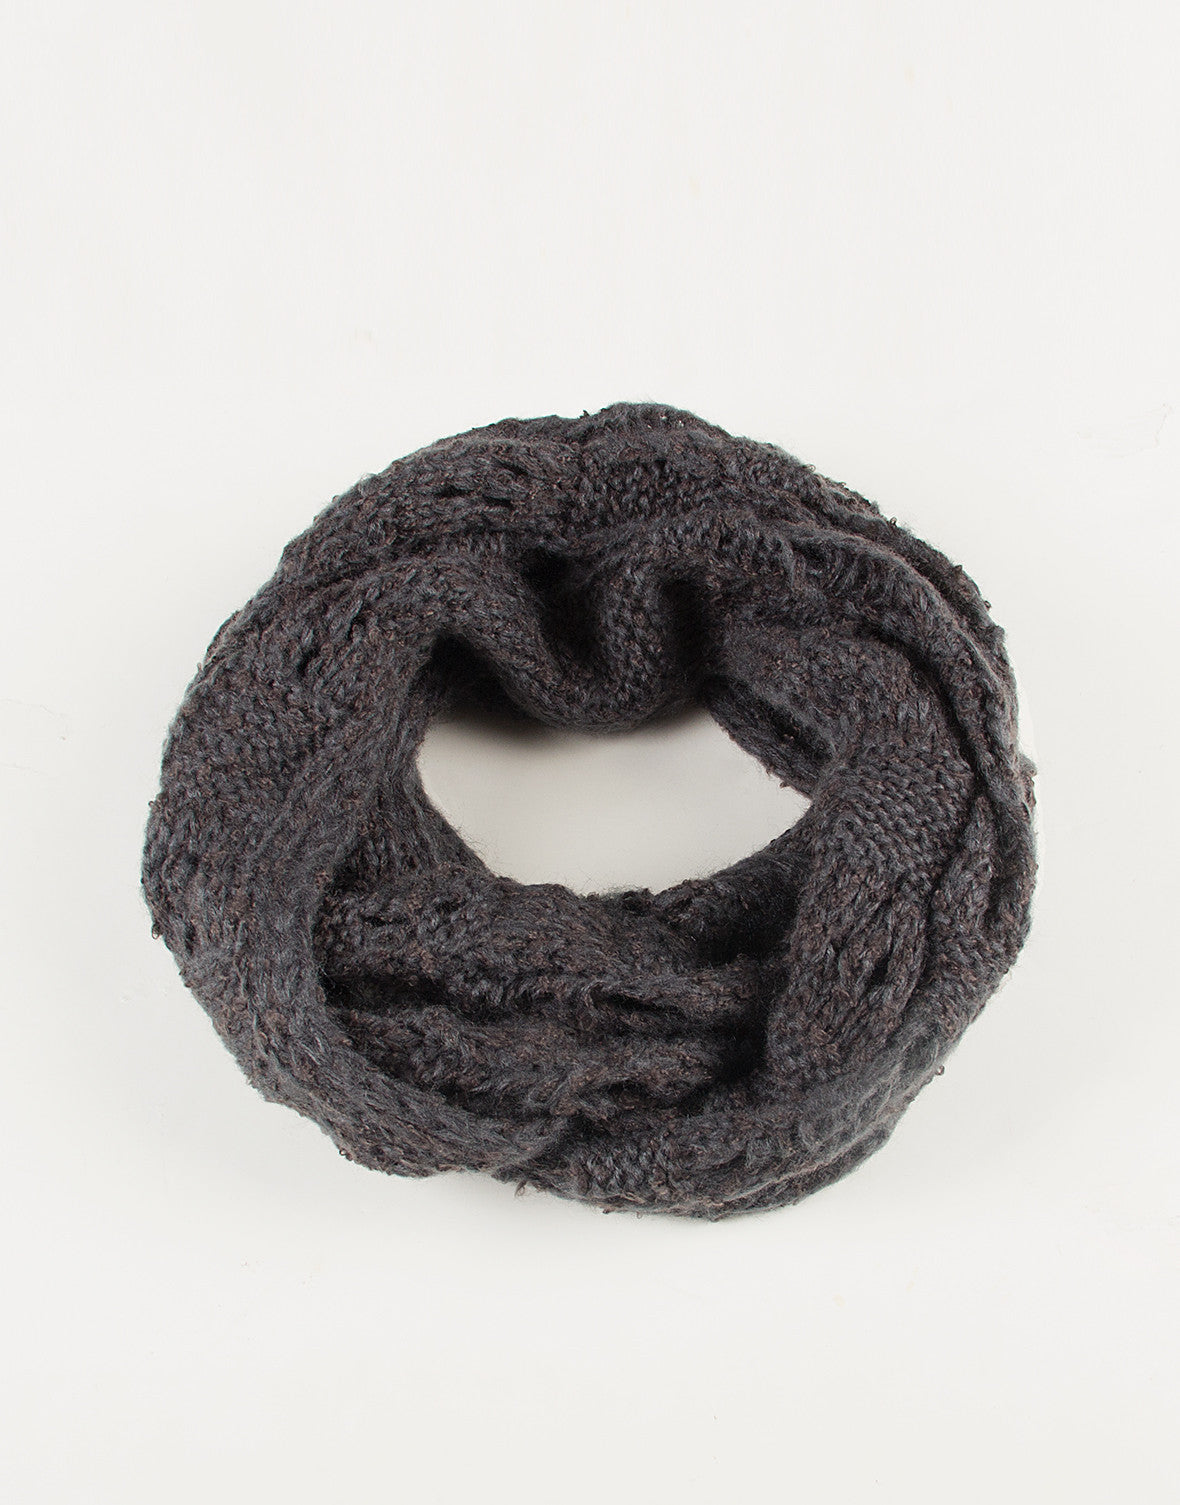 Holey Knit Infinity Scarf - Dusty Blue - 2020AVE